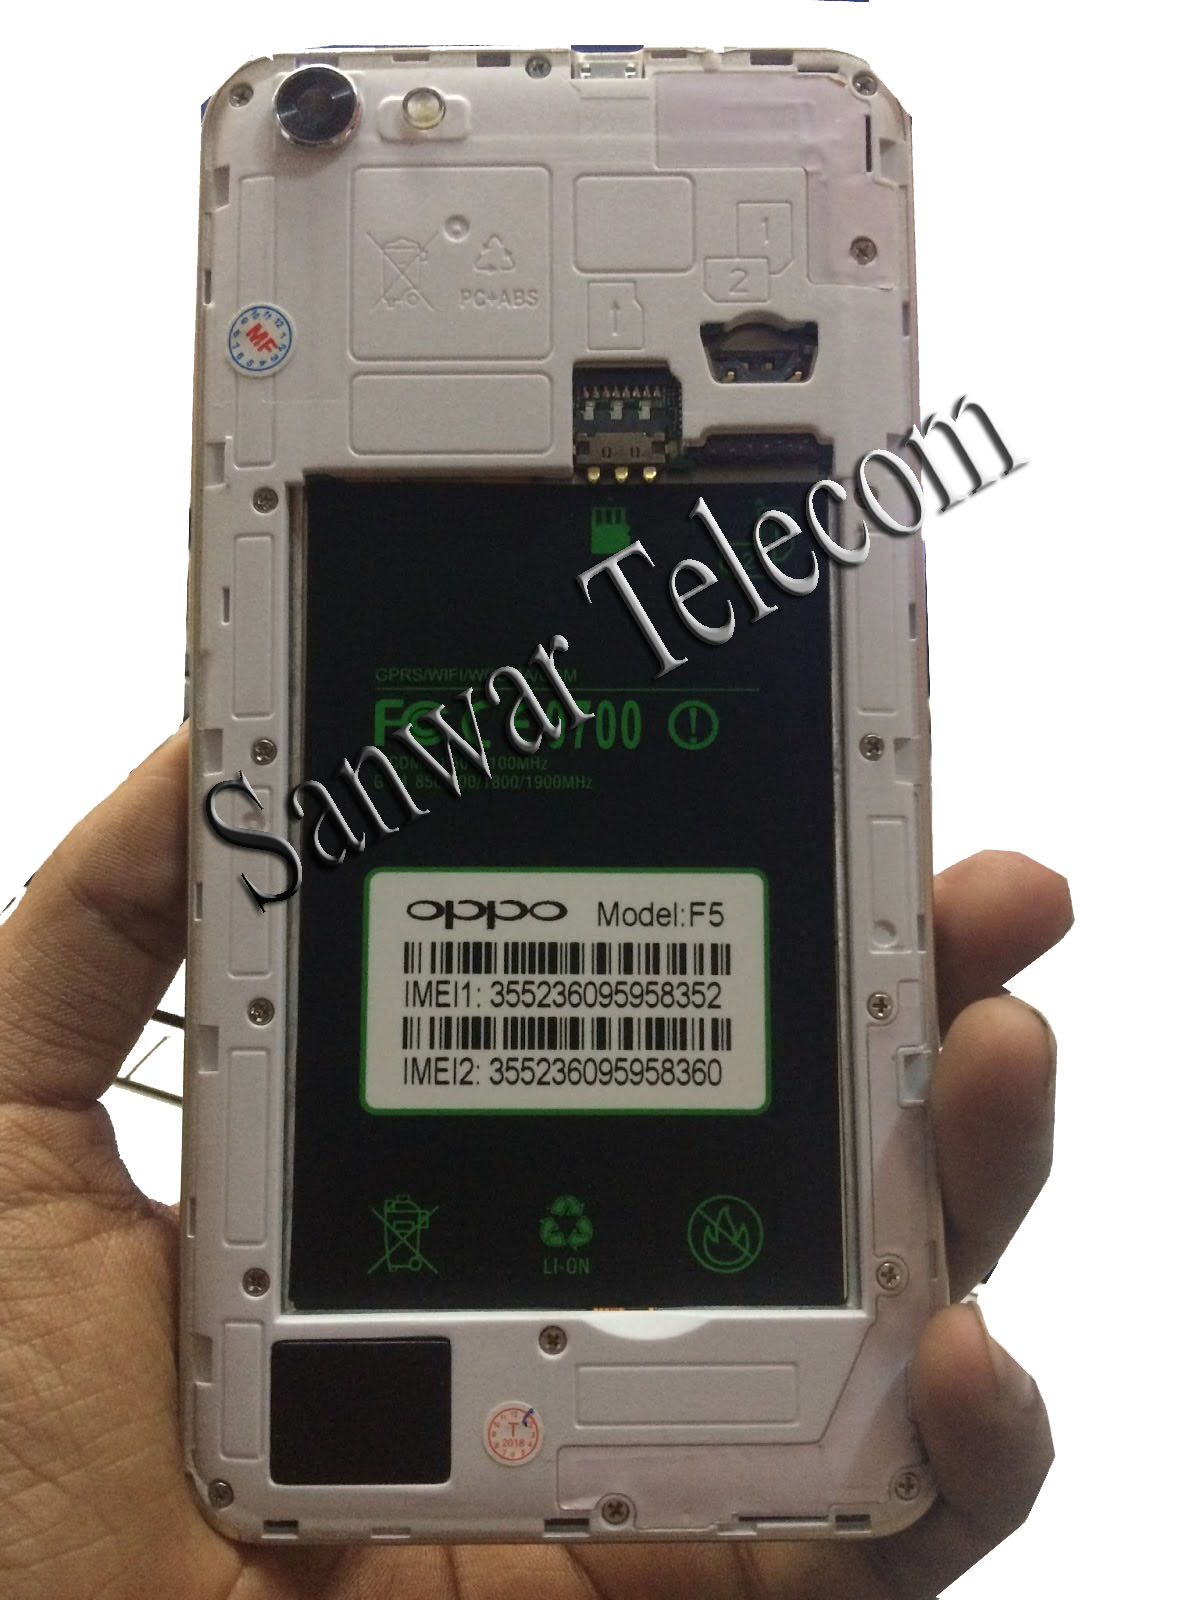 Copy China Oppo F5 MT6580 v7 0 Flash File With Password ( SP